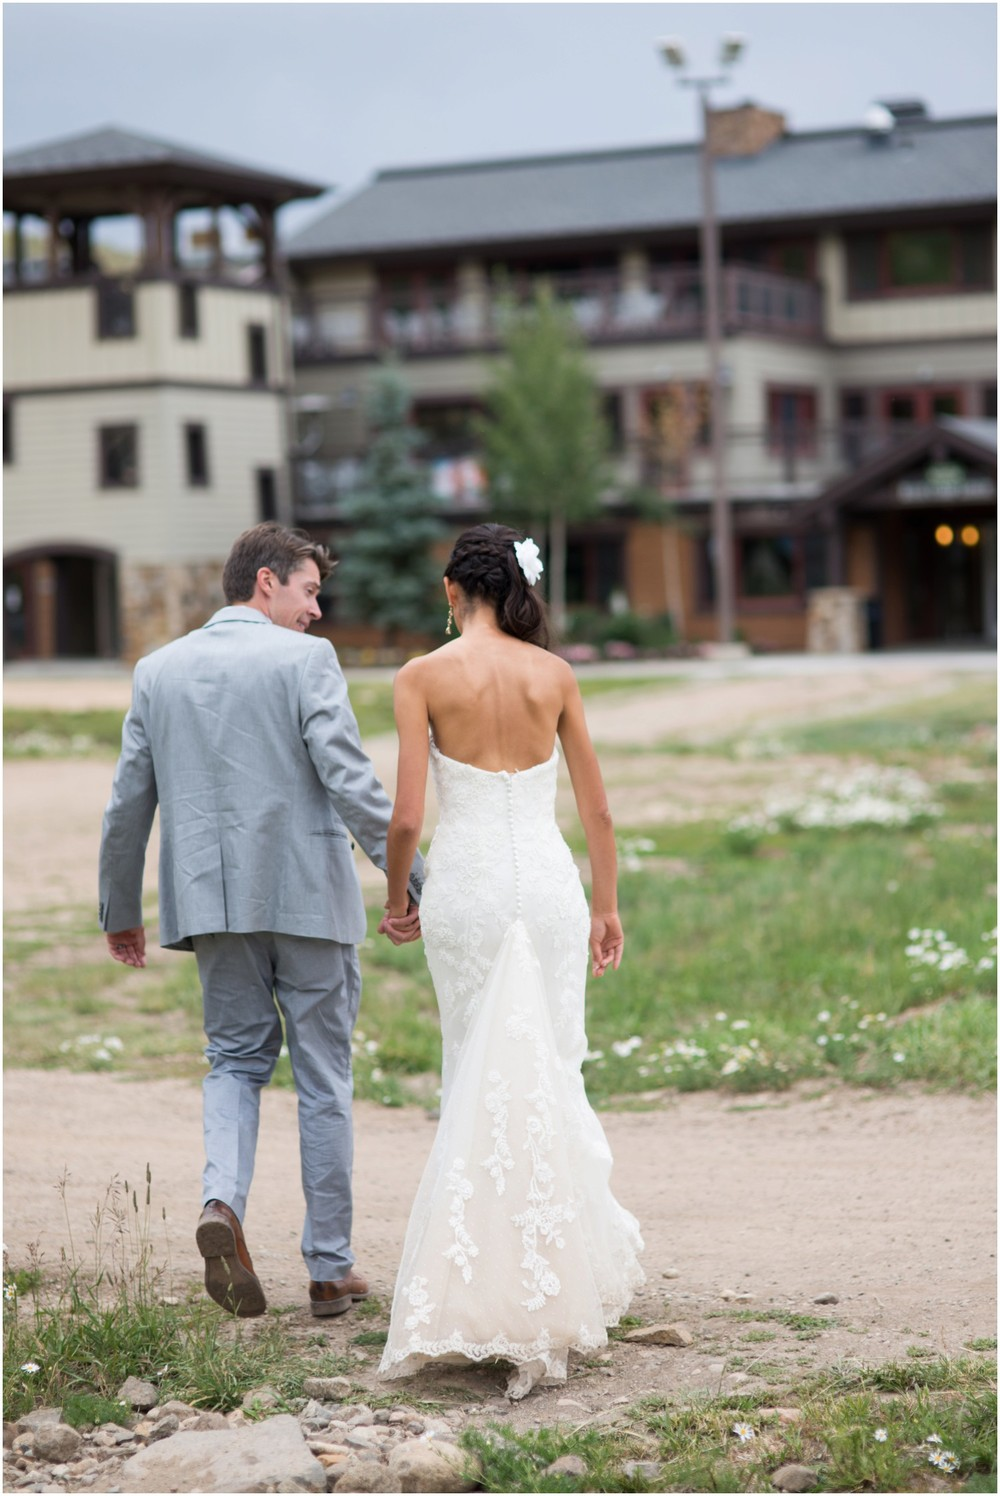 620-Granby-ranch-summer-wedding-photography-Ross.jpg